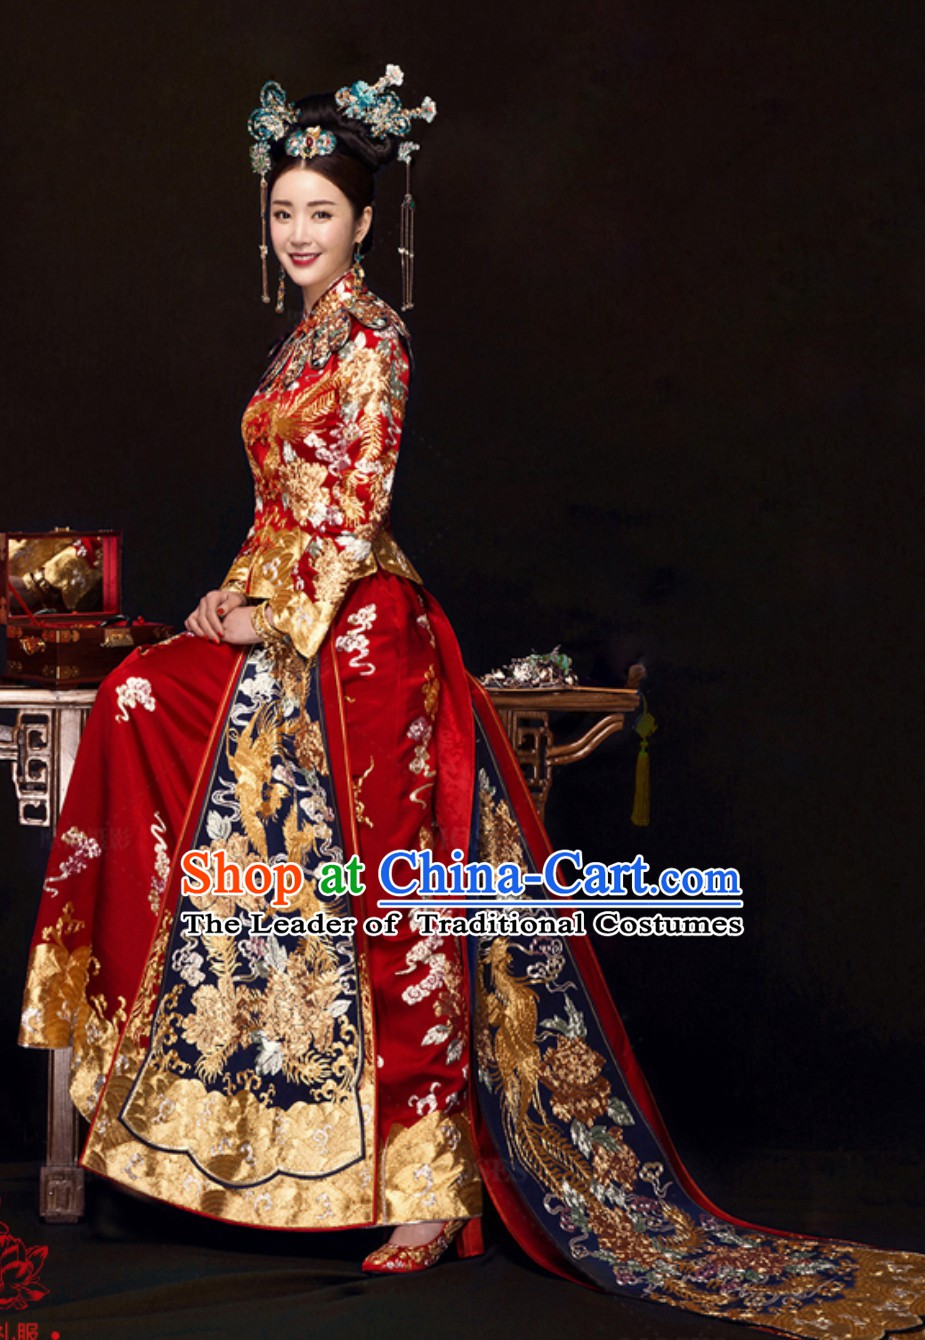 Chinese Traditional Phoenix Embroidery Wedding Dress Garment and Hair Jewelry Complete Set for Brides